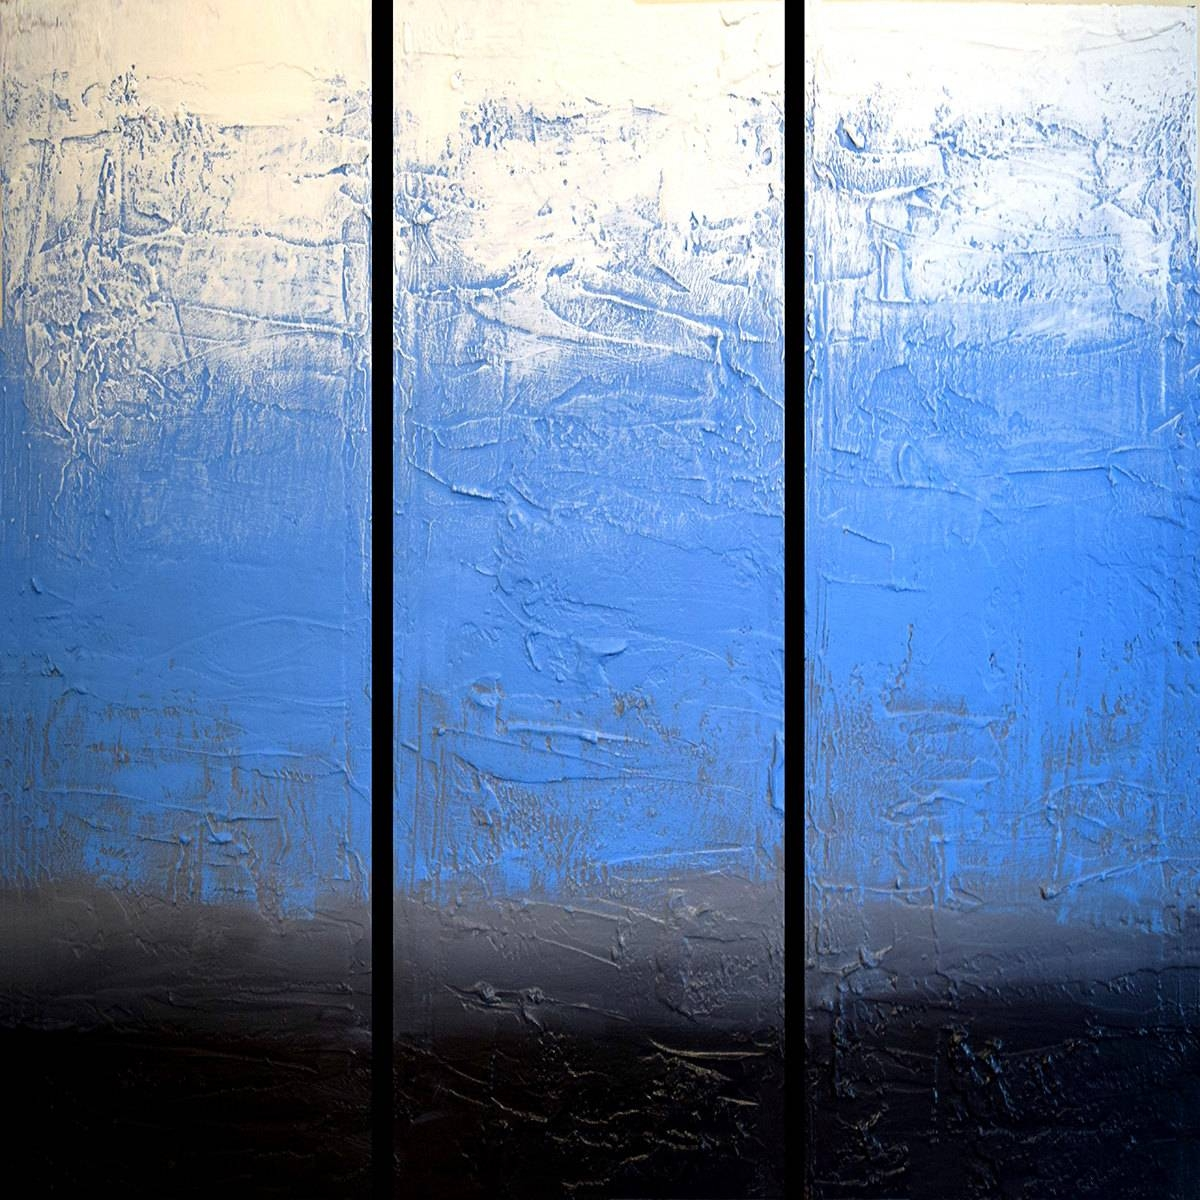 Extra Large Wall Sculpture Art Triptych 3 Panel Wall Art With Regard To Best And Newest Large Triptych Wall Art (View 12 of 20)